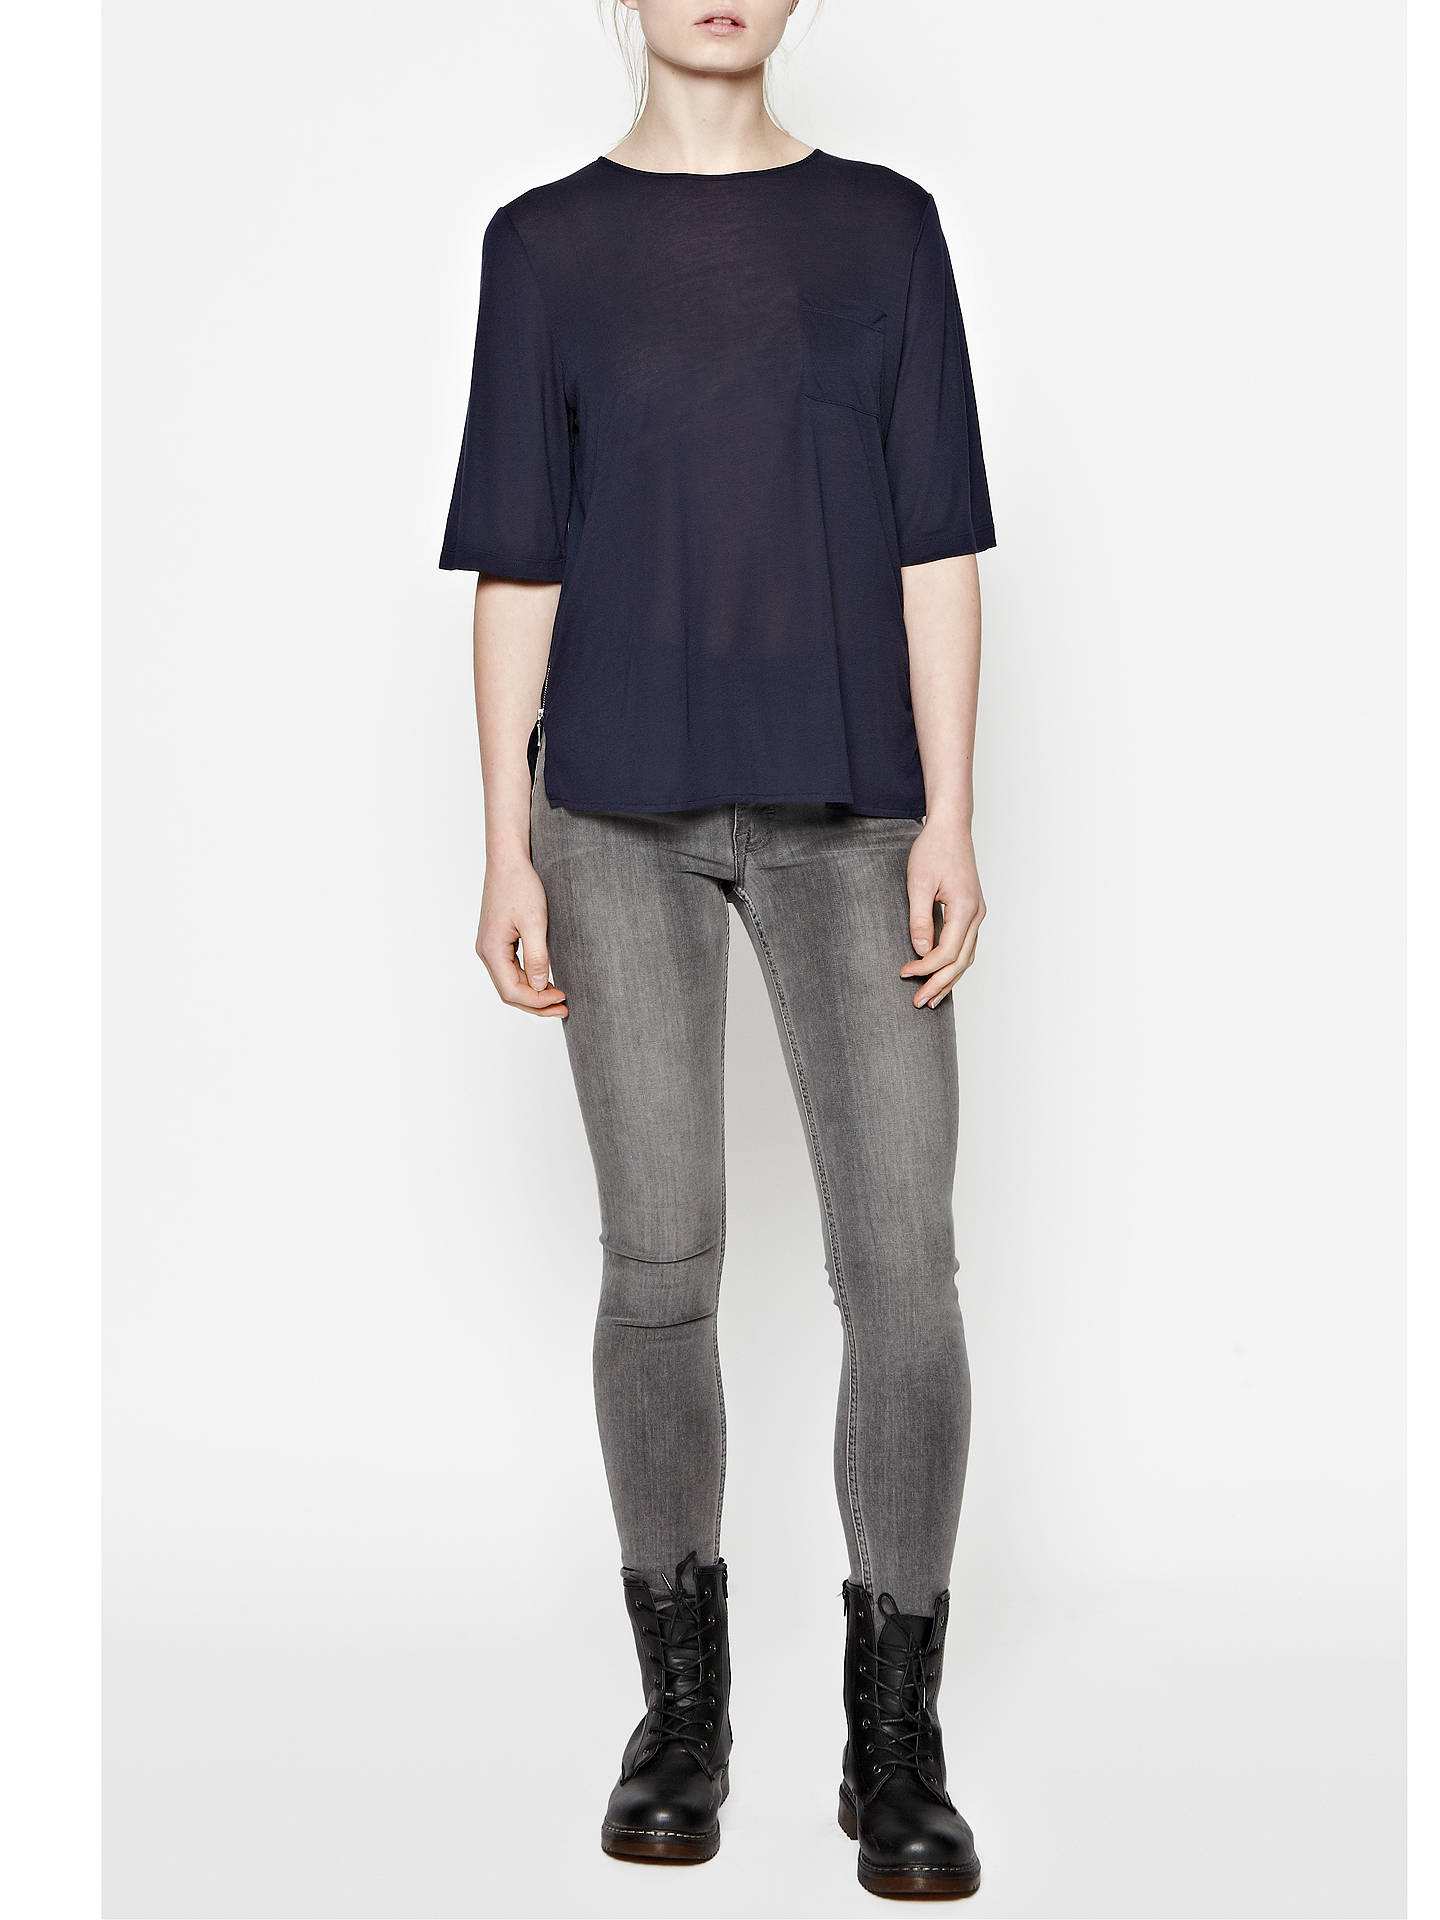 BuyFrench Connection Polly Plains Top, Black, XS Online at johnlewis.com